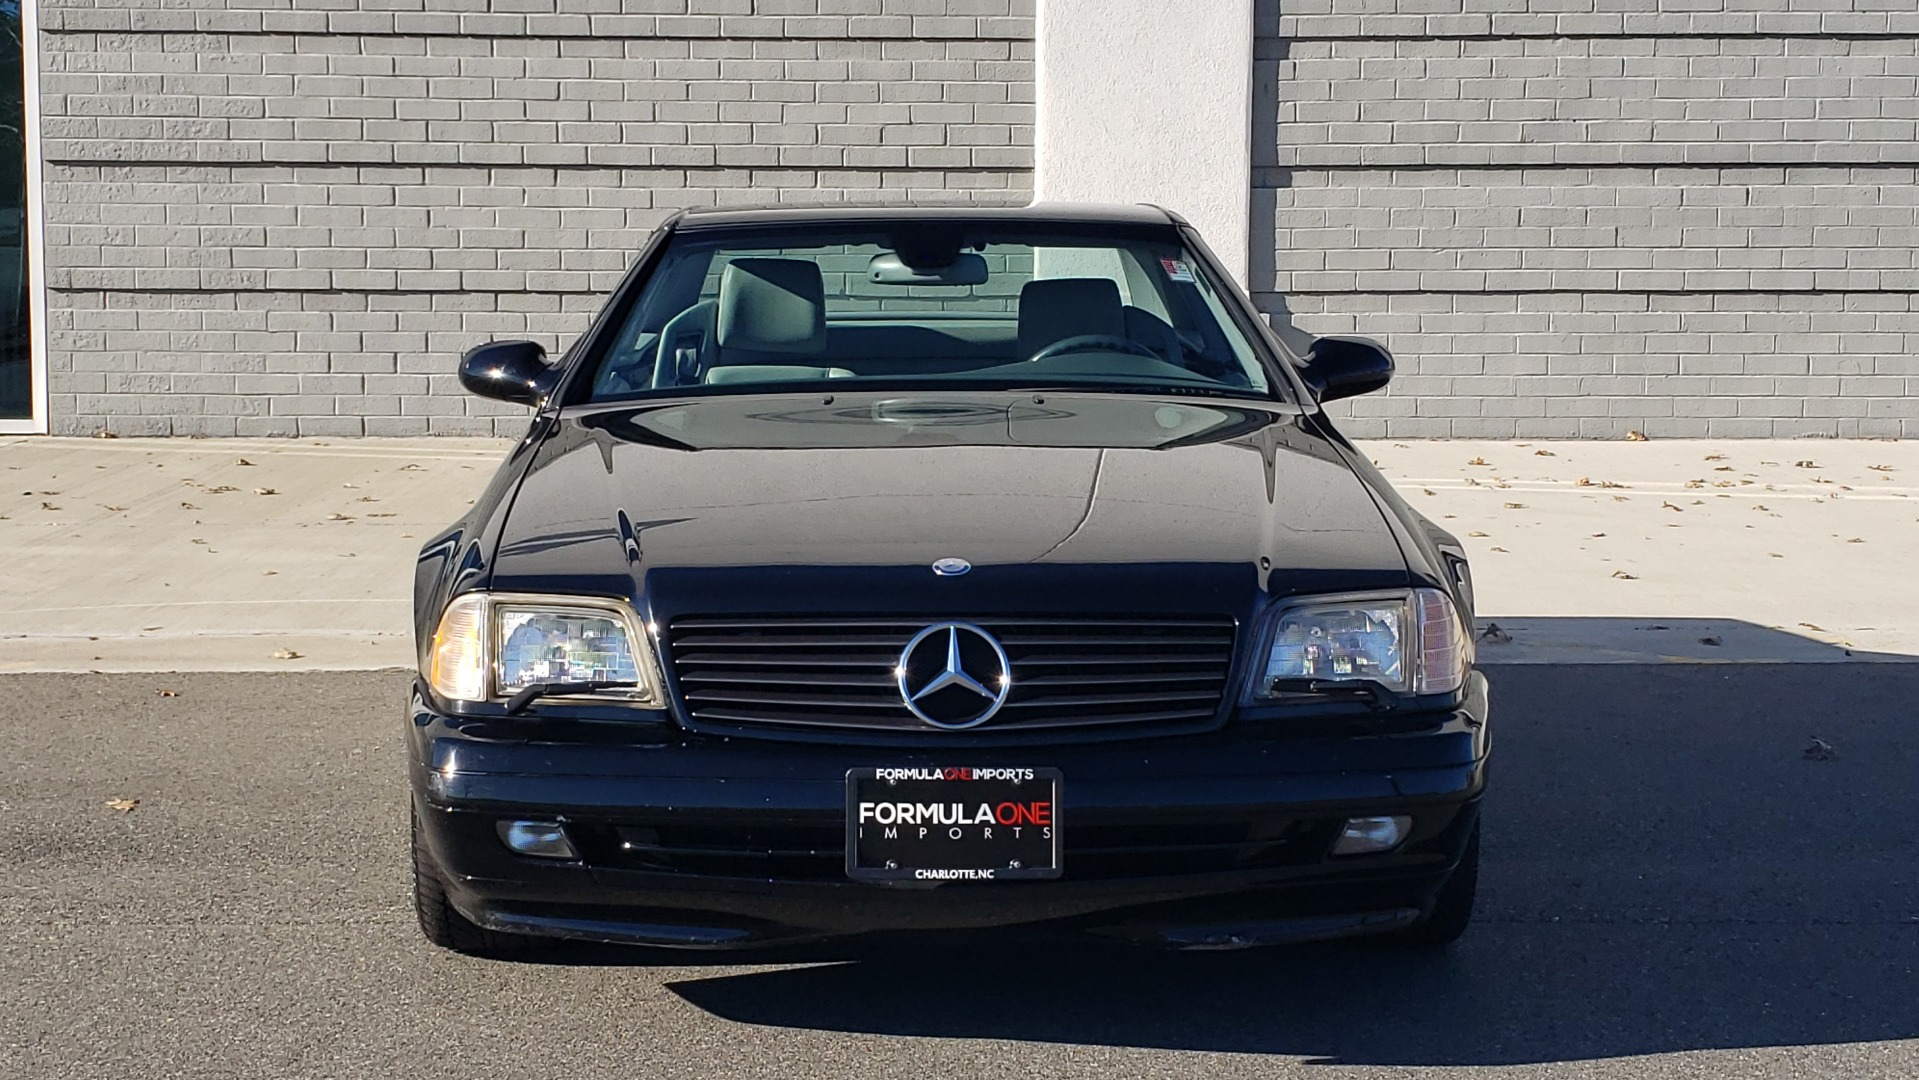 Used 1999 Mercedes-Benz SL-CLASS ROADSTER / 5.0L V8 (302HP) / 5-SPD AUTO / 18IN WHEELS for sale Sold at Formula Imports in Charlotte NC 28227 23